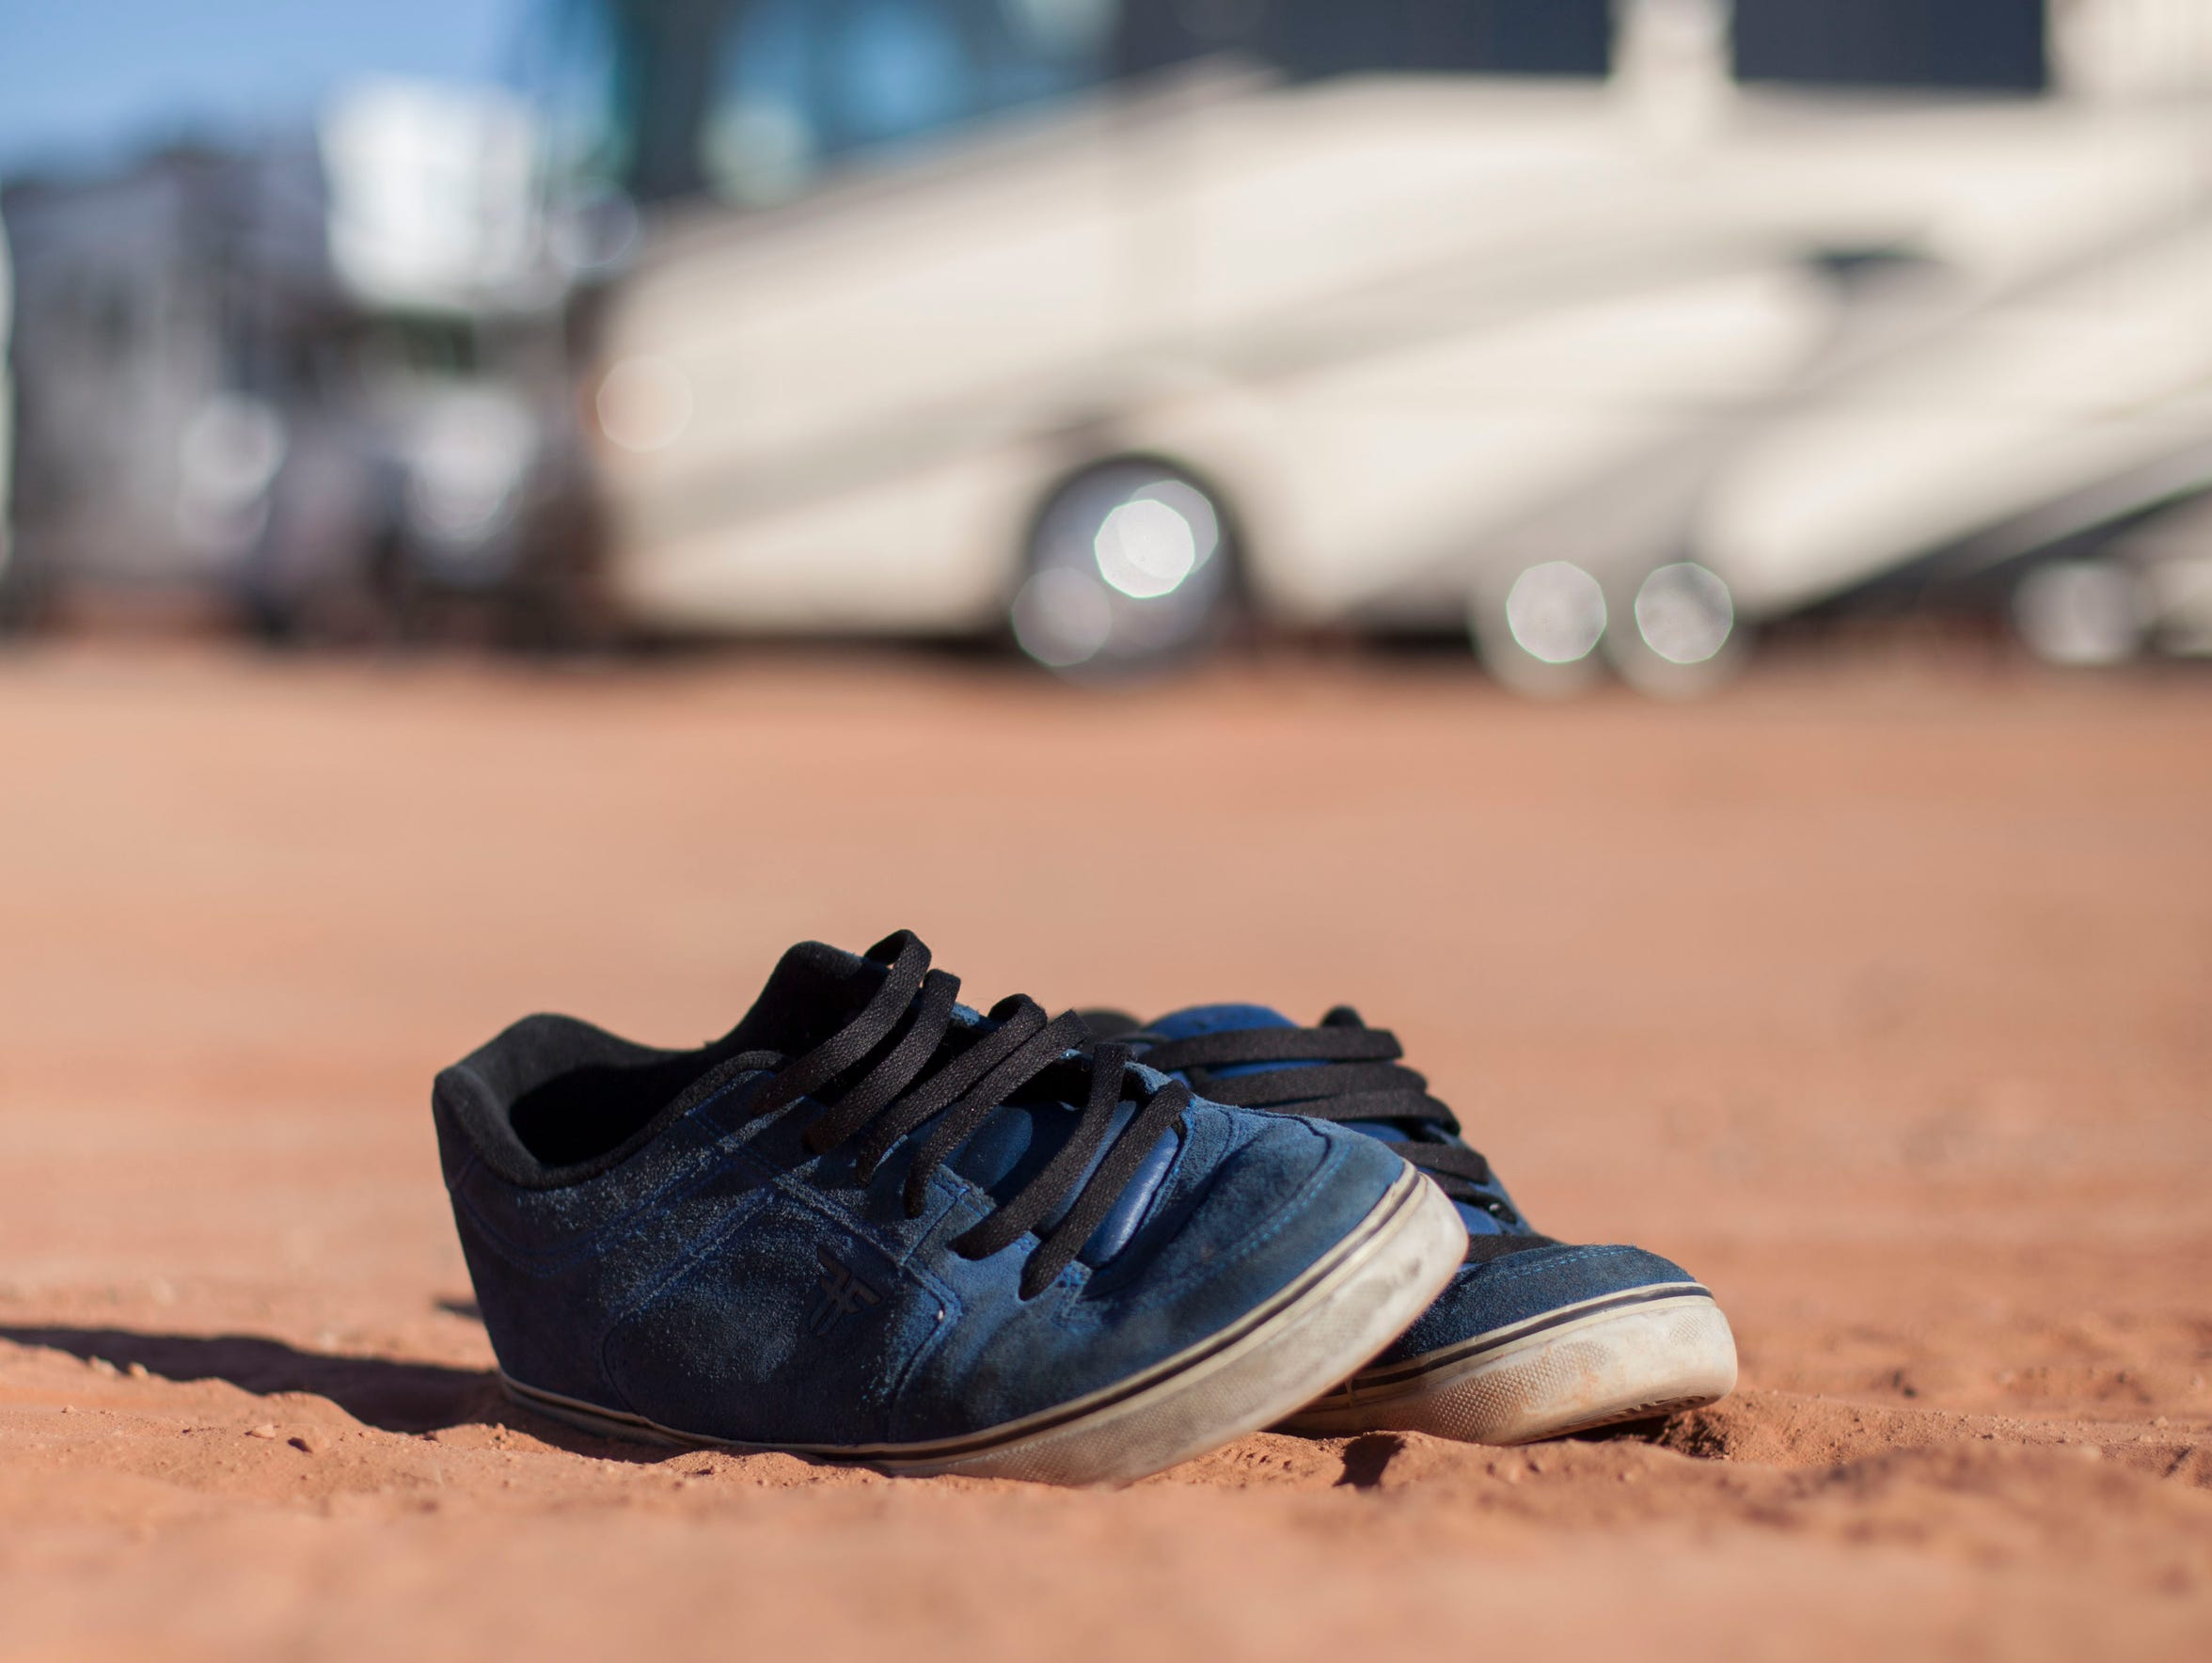 Homeless, Southern Utah, youth often look to sex work